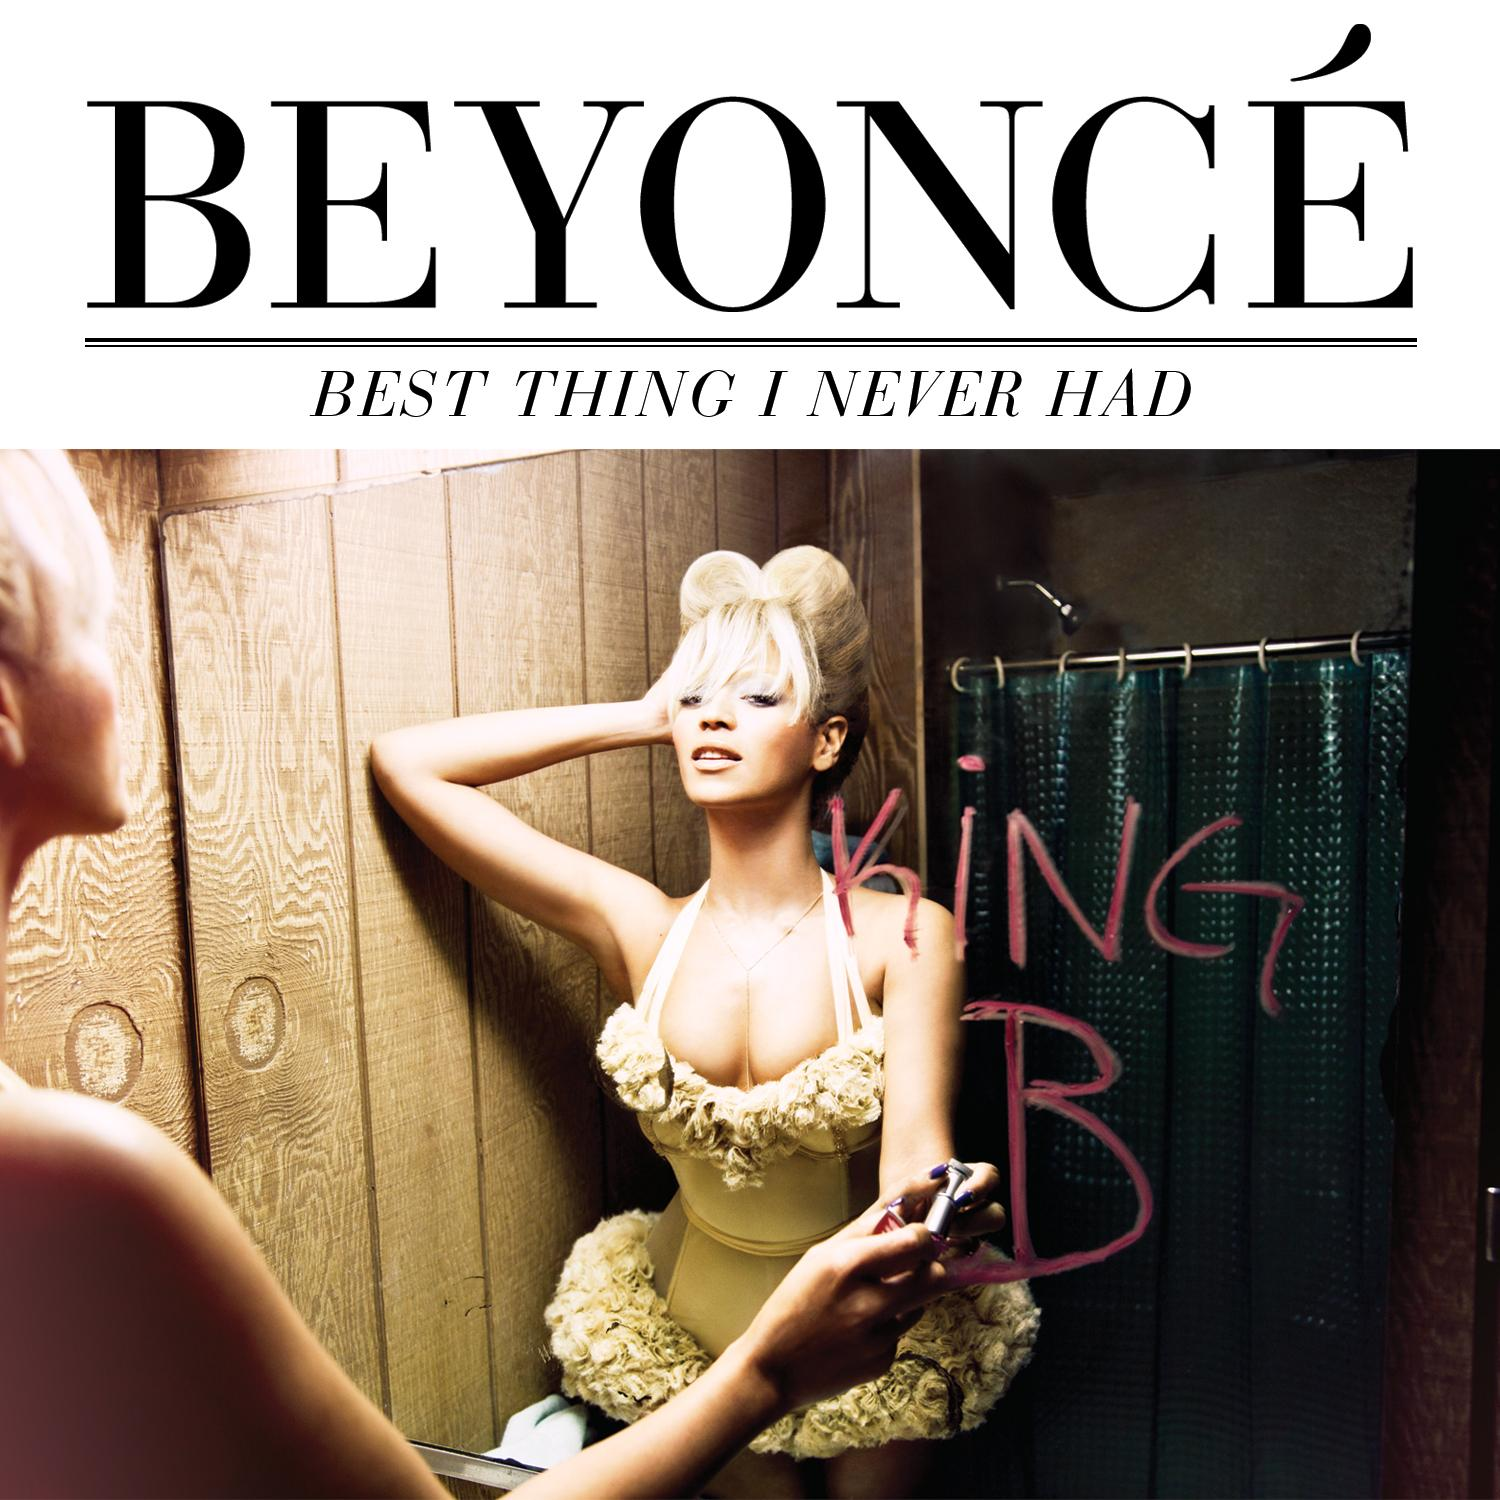 Beyonce - Best Thing I Never Had (Moguai Remix)